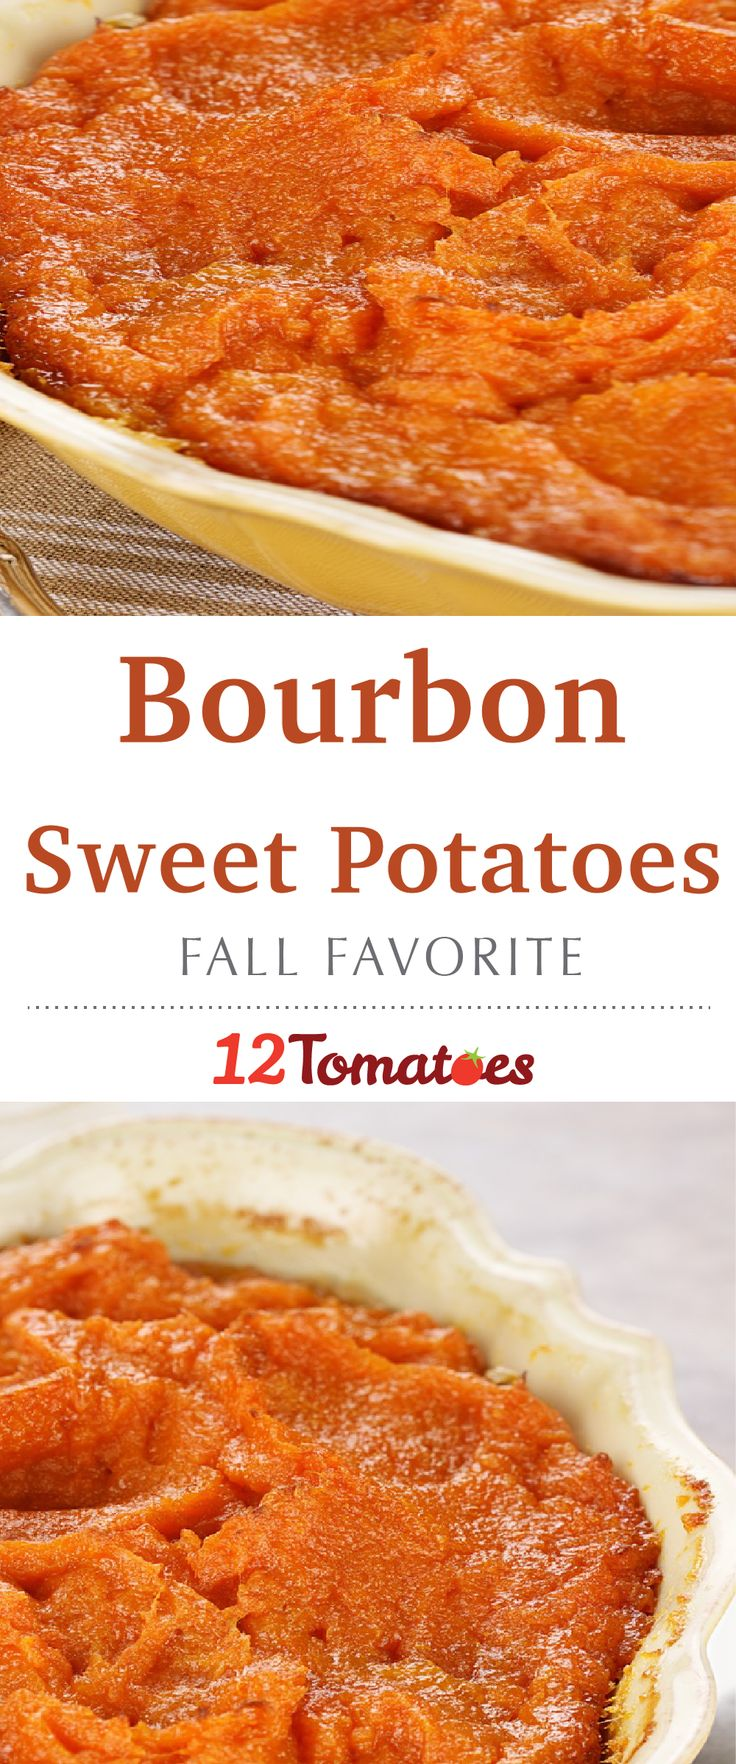 Best 25+ Bourbon liquor ideas on Pinterest | Alcoholic ...